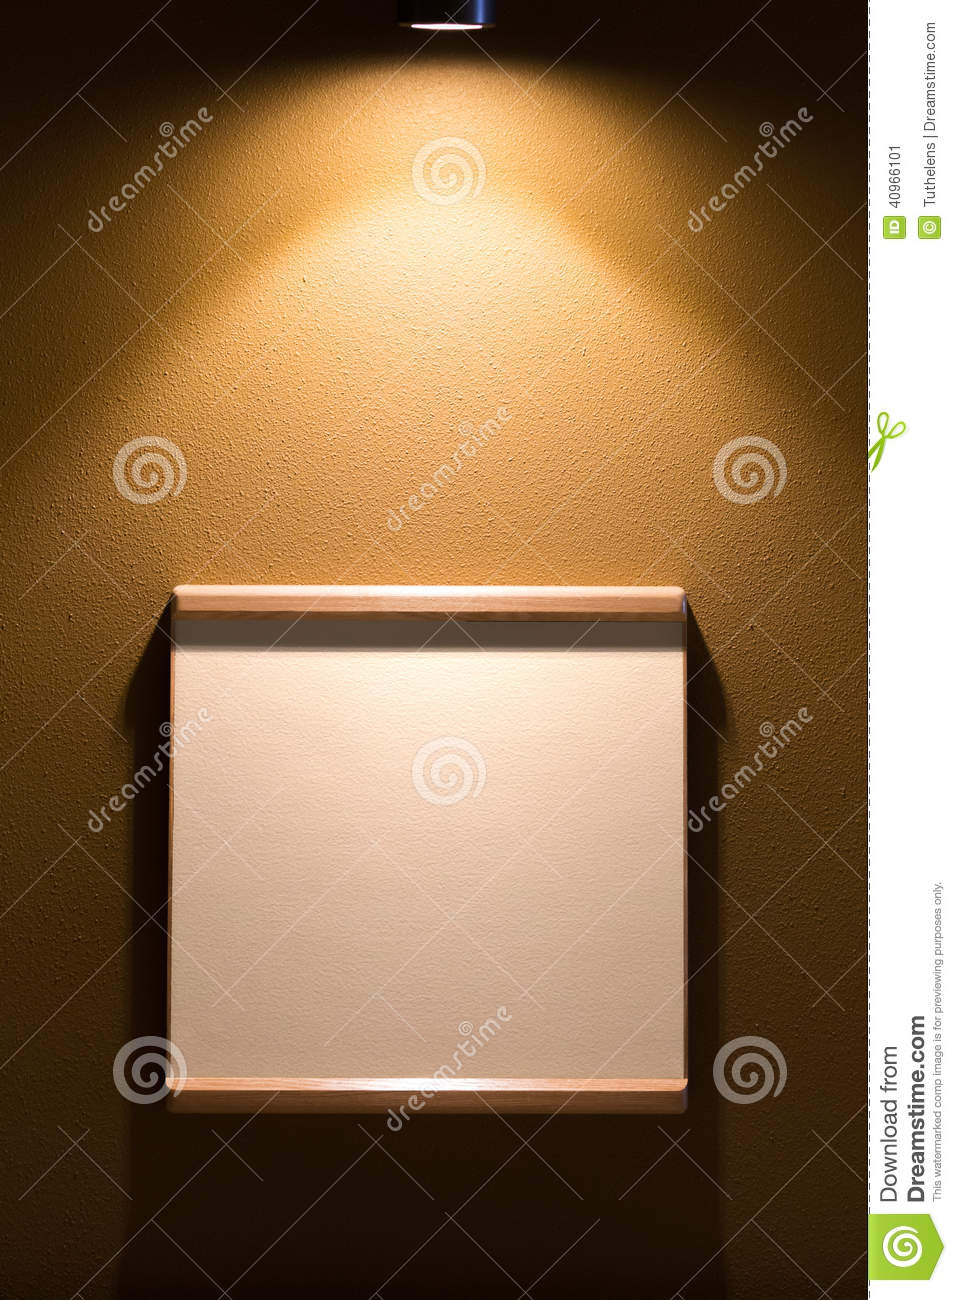 Empty Frame On The Wall With Spotlight Stock Image - Image of ...